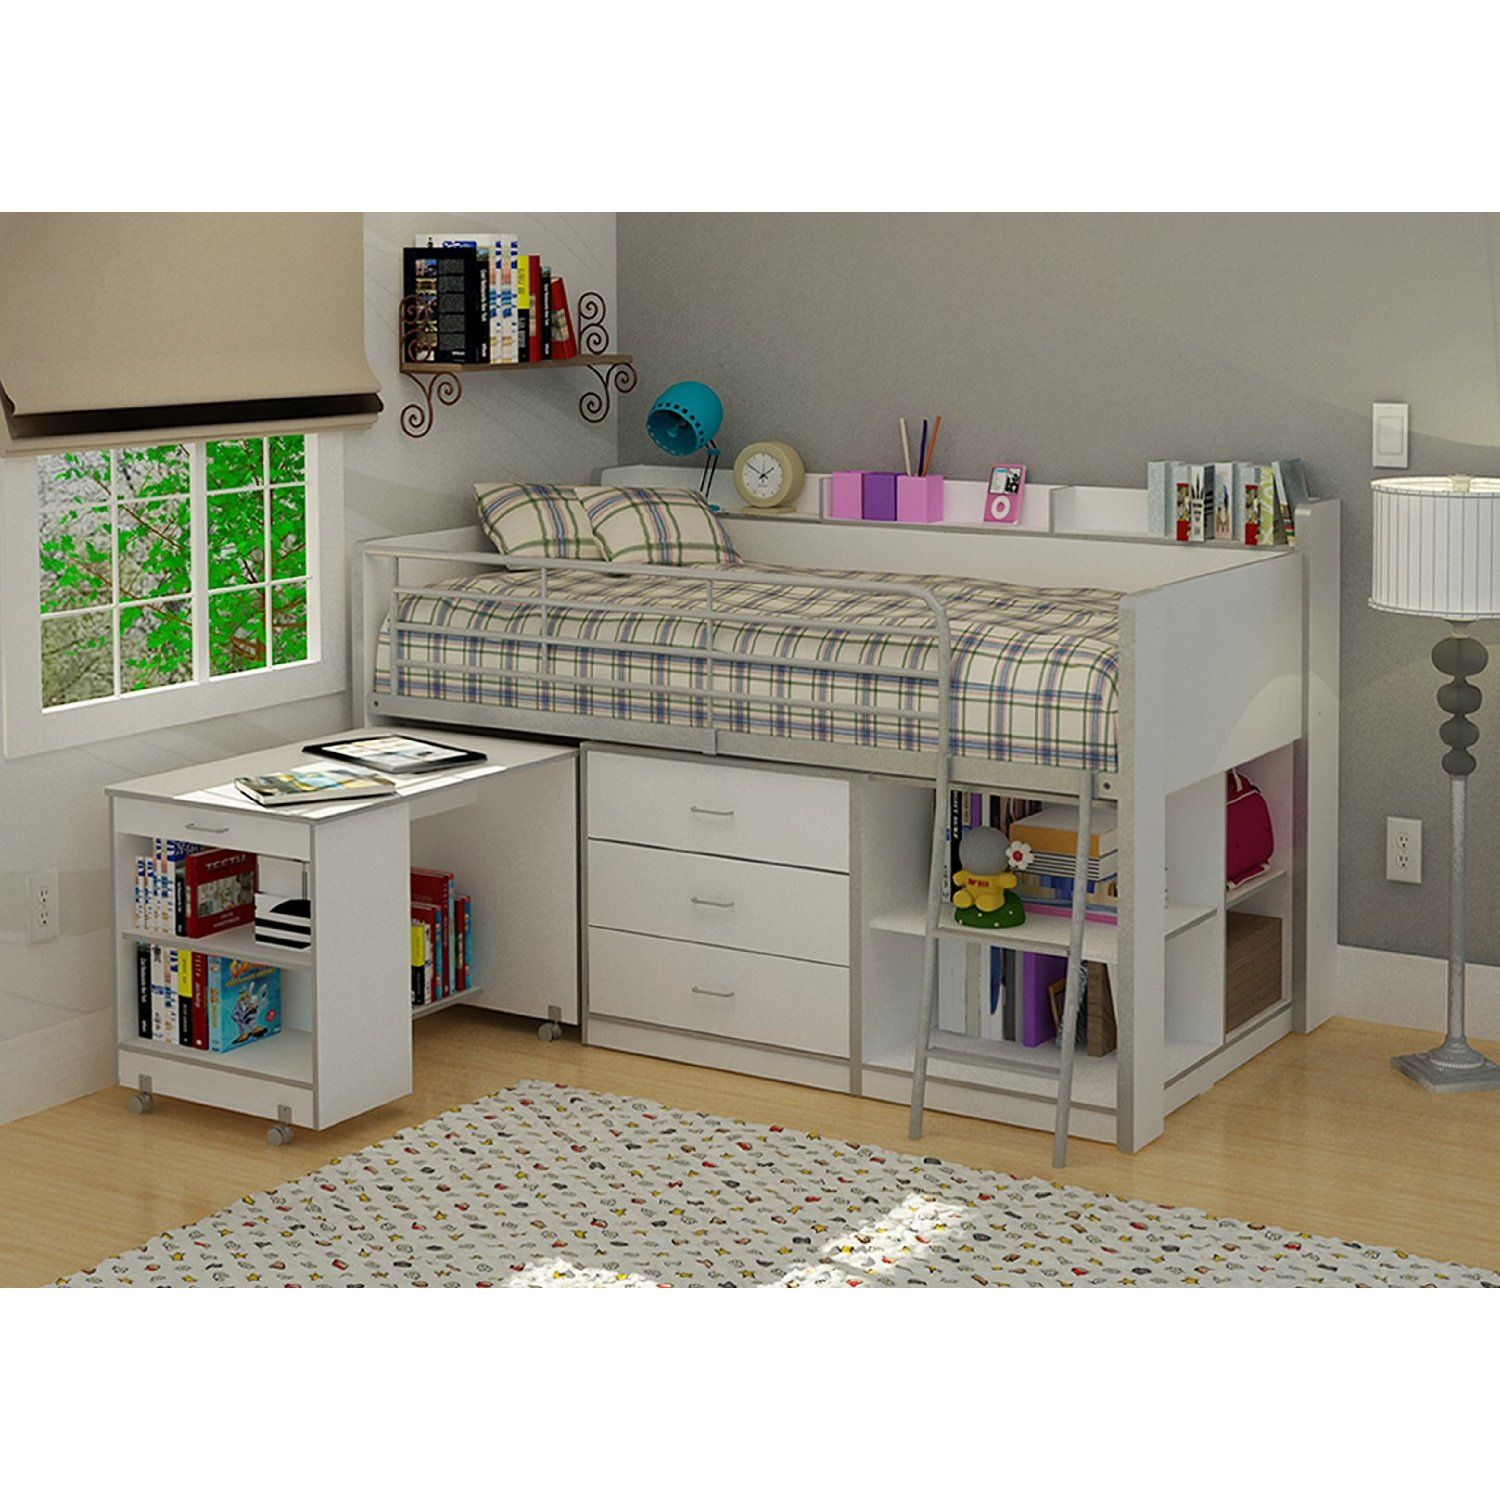 Rack Furniture Clairmont Loft Bed White Cute And About